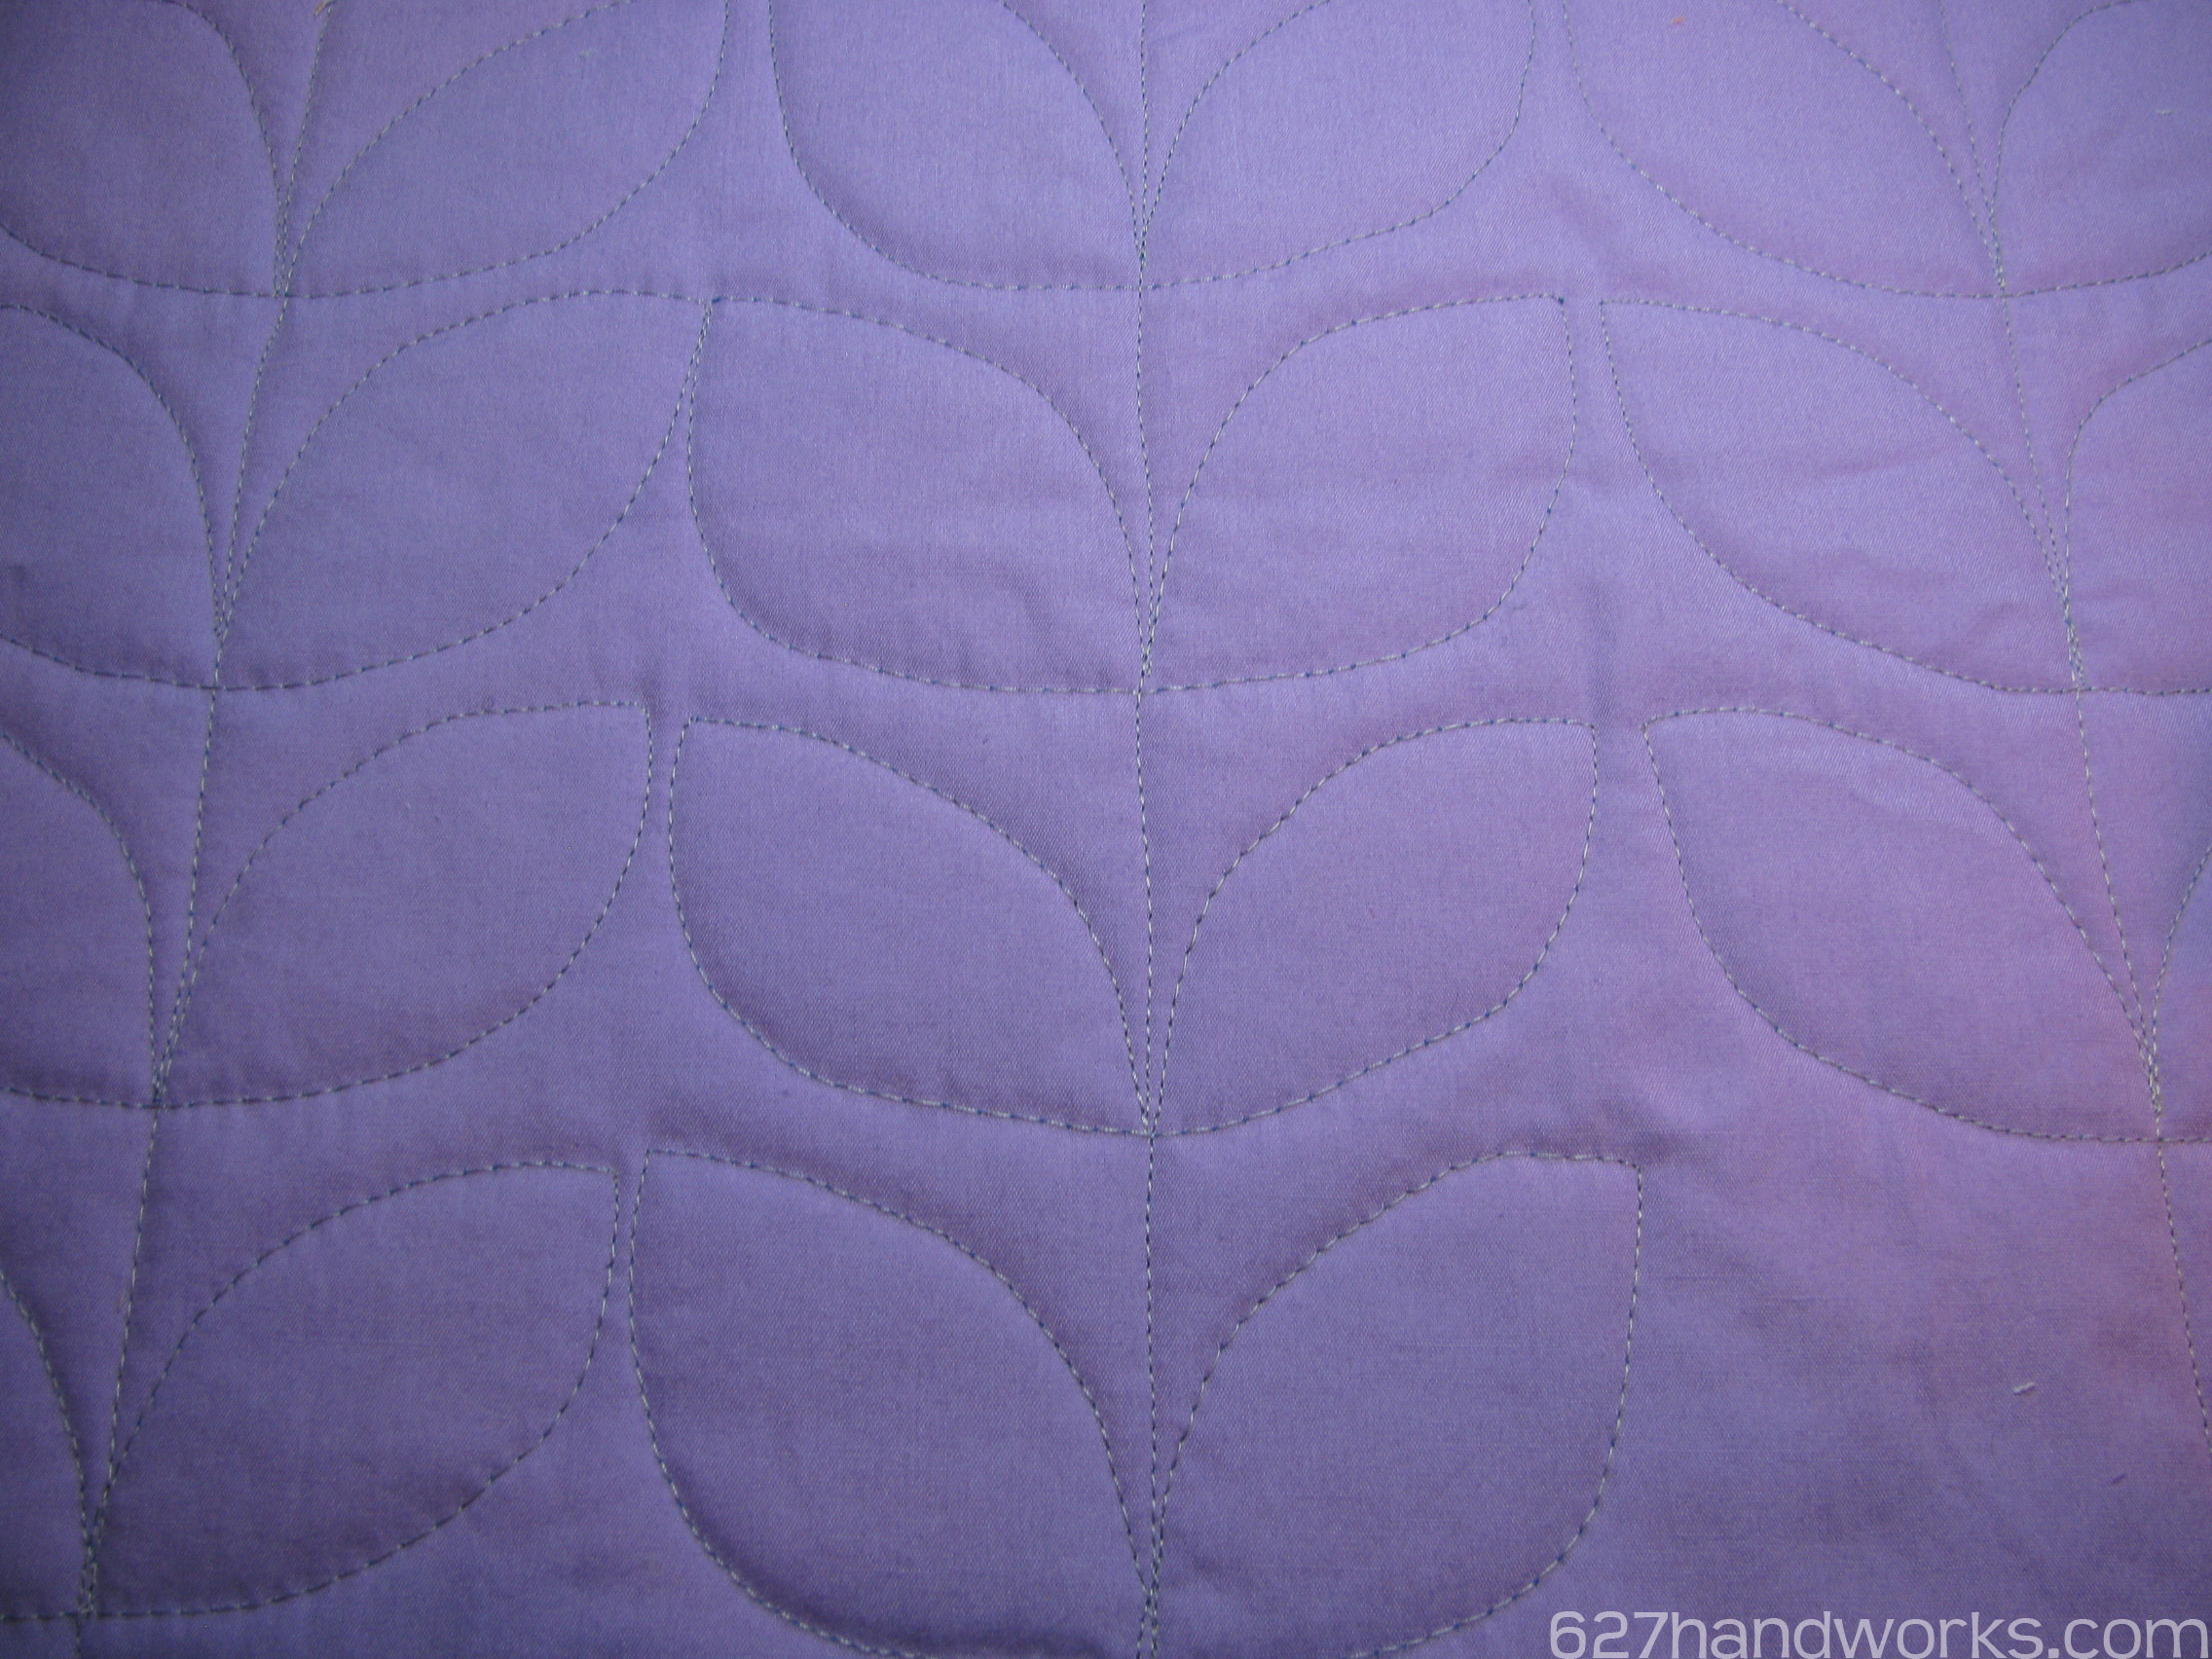 Tutorial: Free Motion Quilting Modern Petals 627handworks